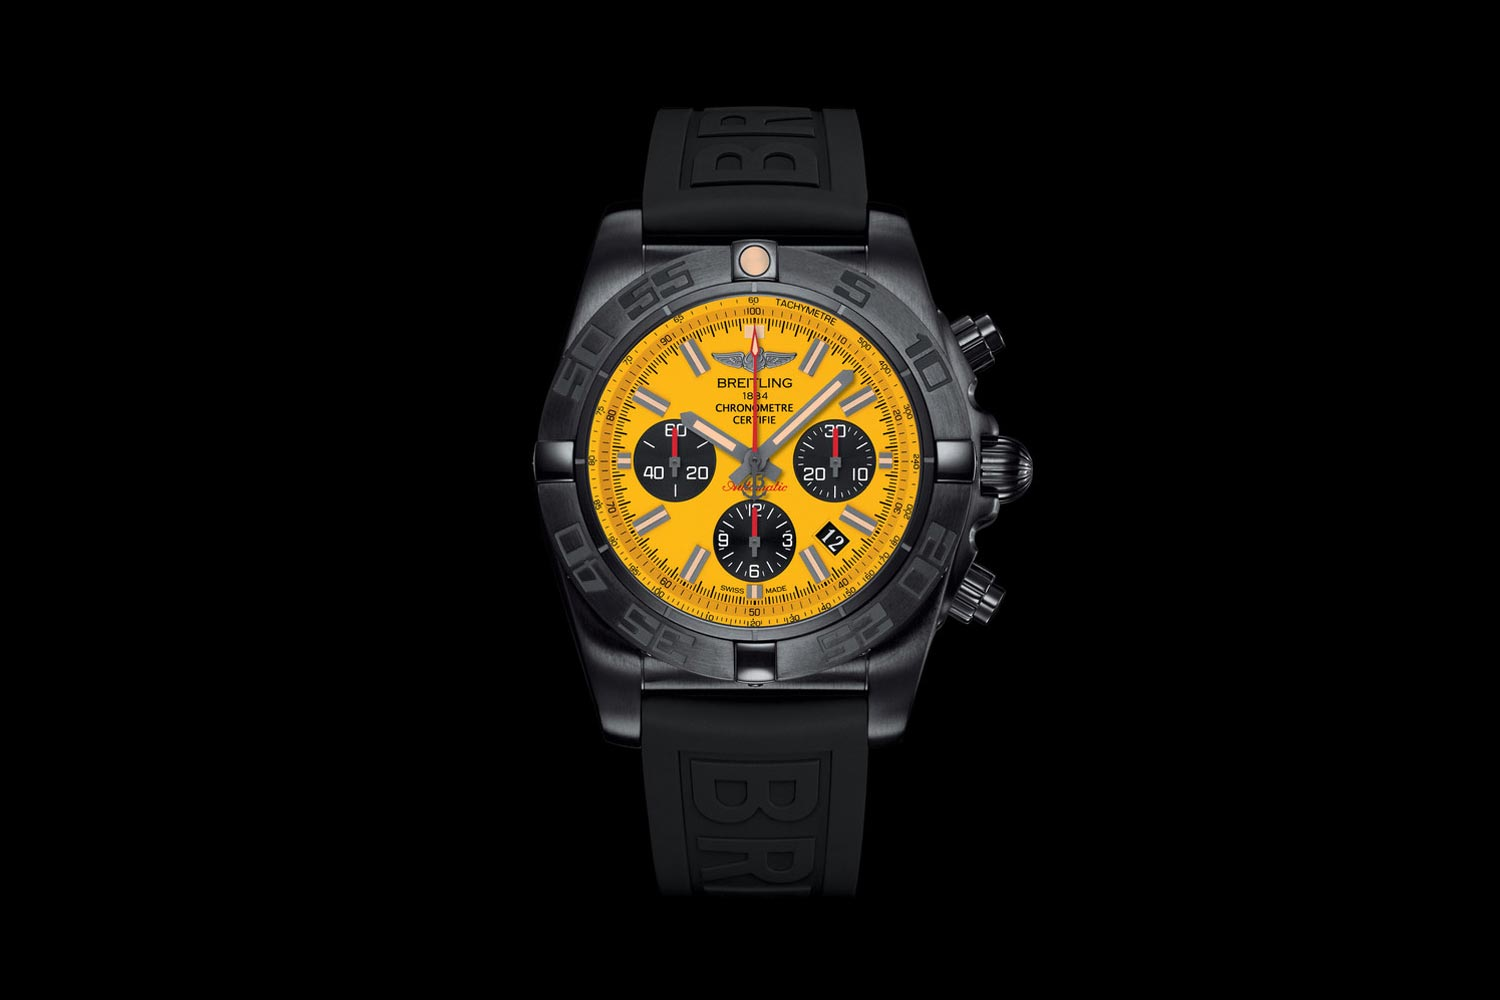 Breitling Chronomat Blacksteel Special Edition